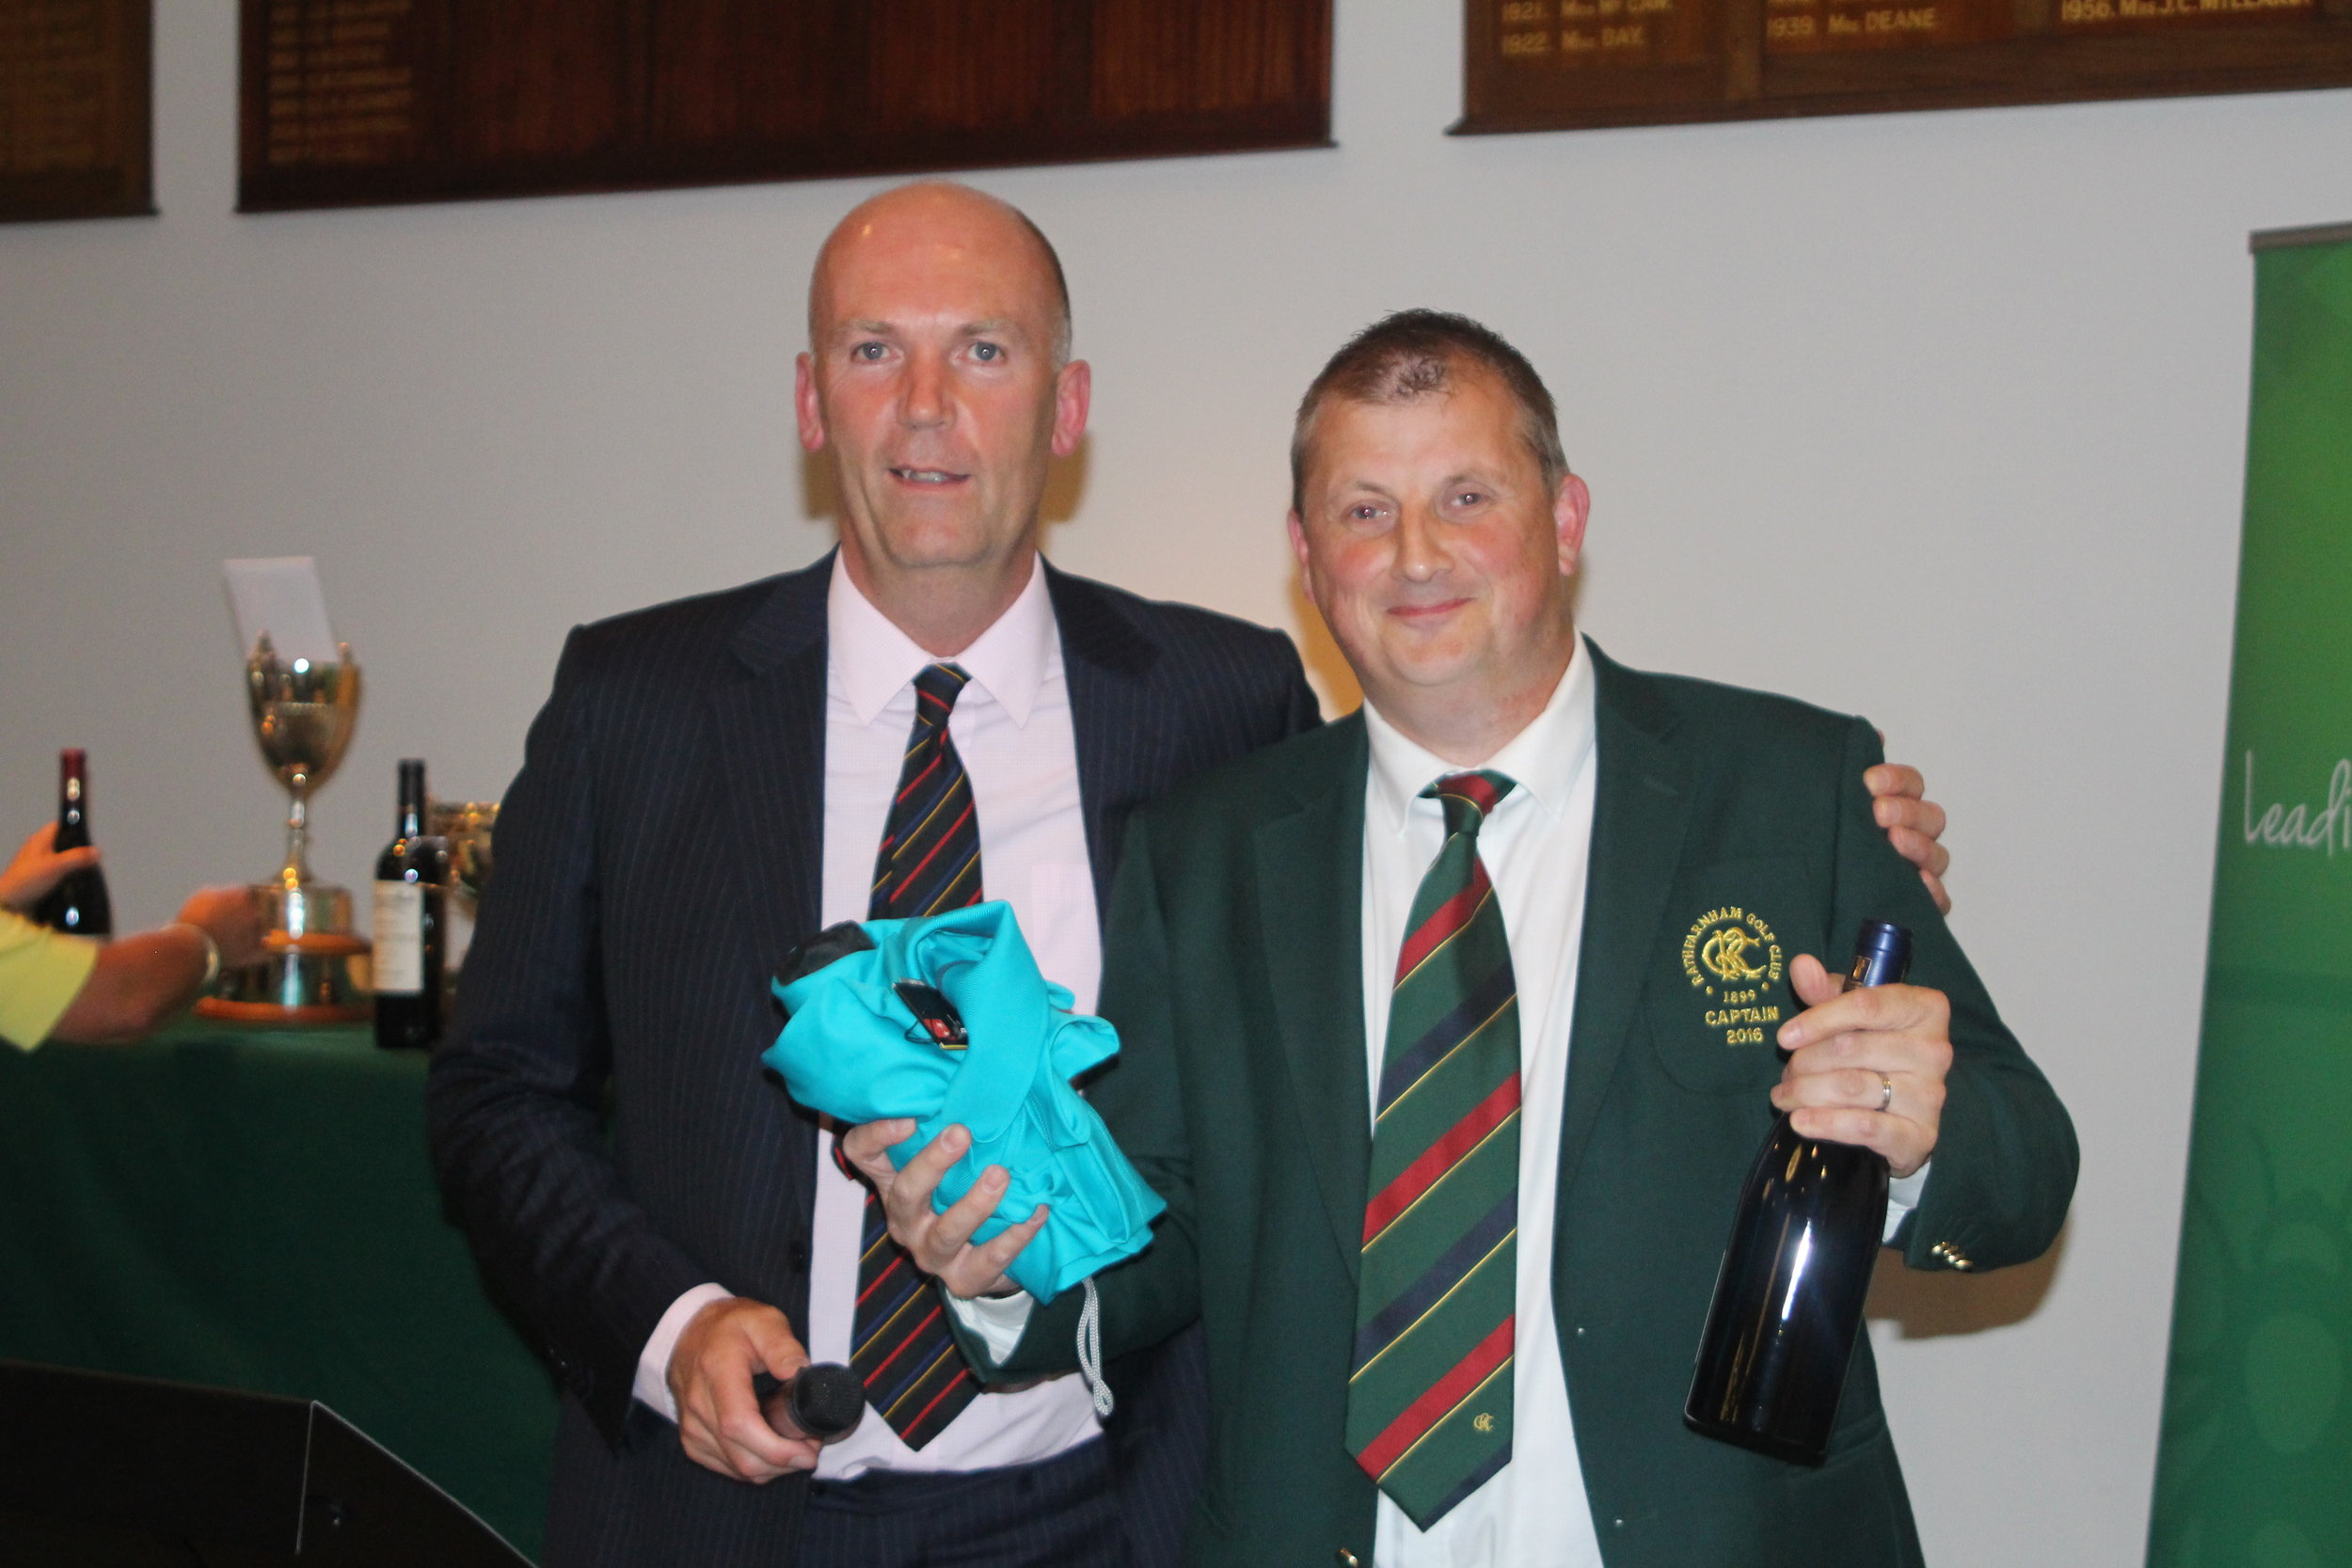 John Gillis with Alan Hood RGC Club Captain